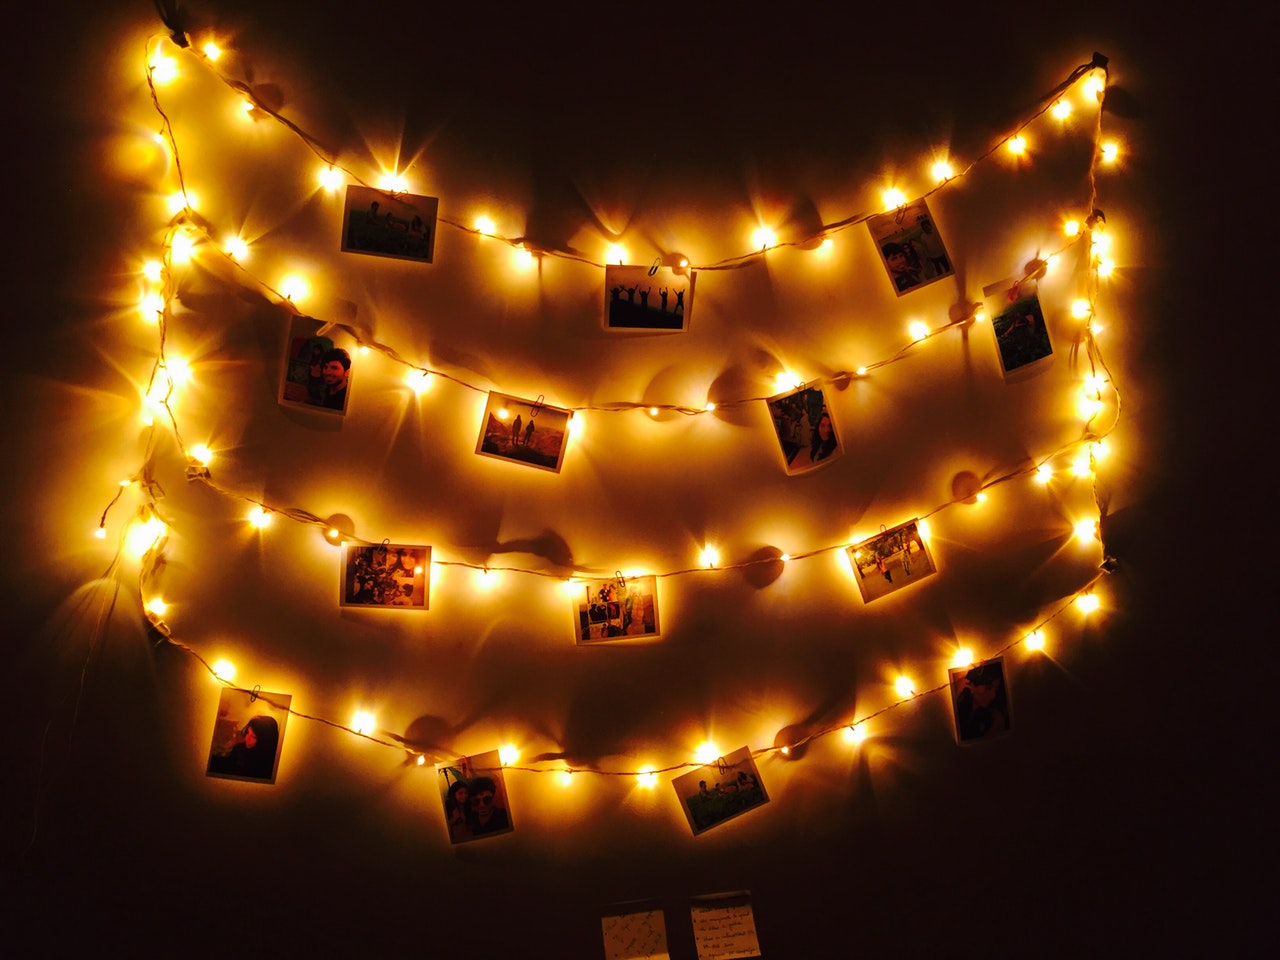 11 Unique Photo Memory Wall Display Ideas 2